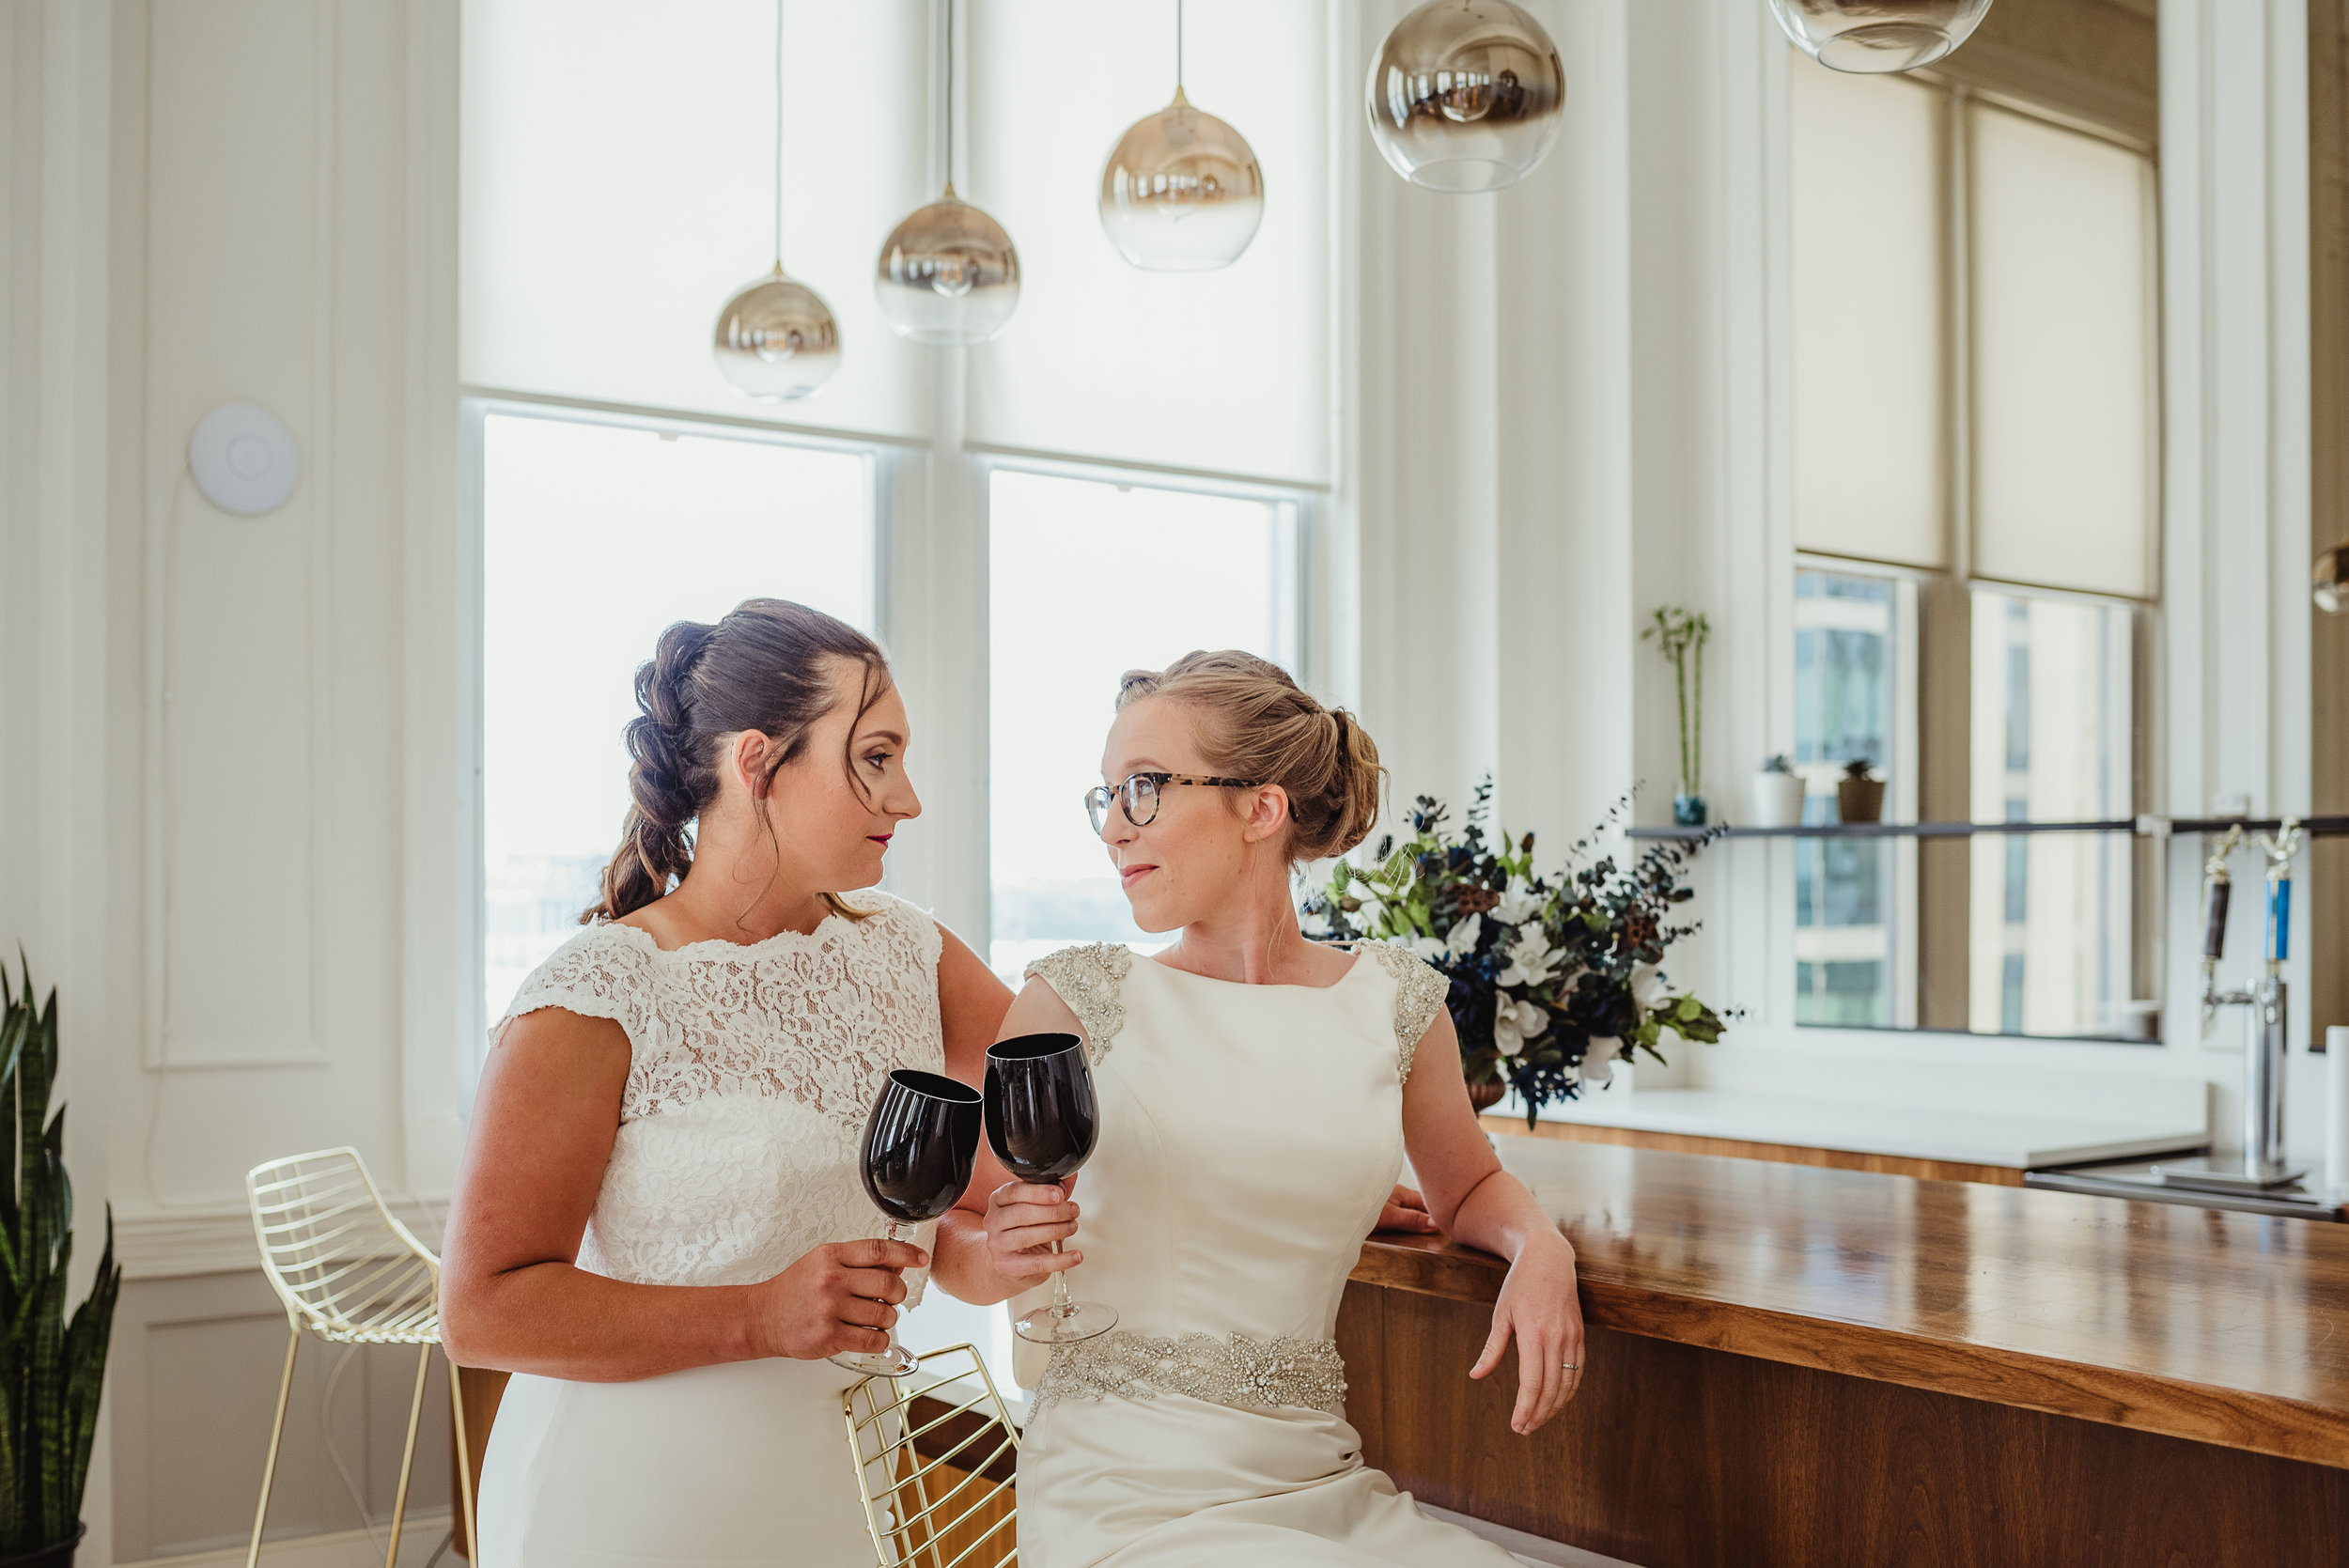 Cannon-Room-Inclusive-Wedding-Vendors-Maggi-Bridal-Rowan-Lane-Events-Rose-Trail-Images-Bustld-Triangle-Two-Brides-Modern-Love.jpg